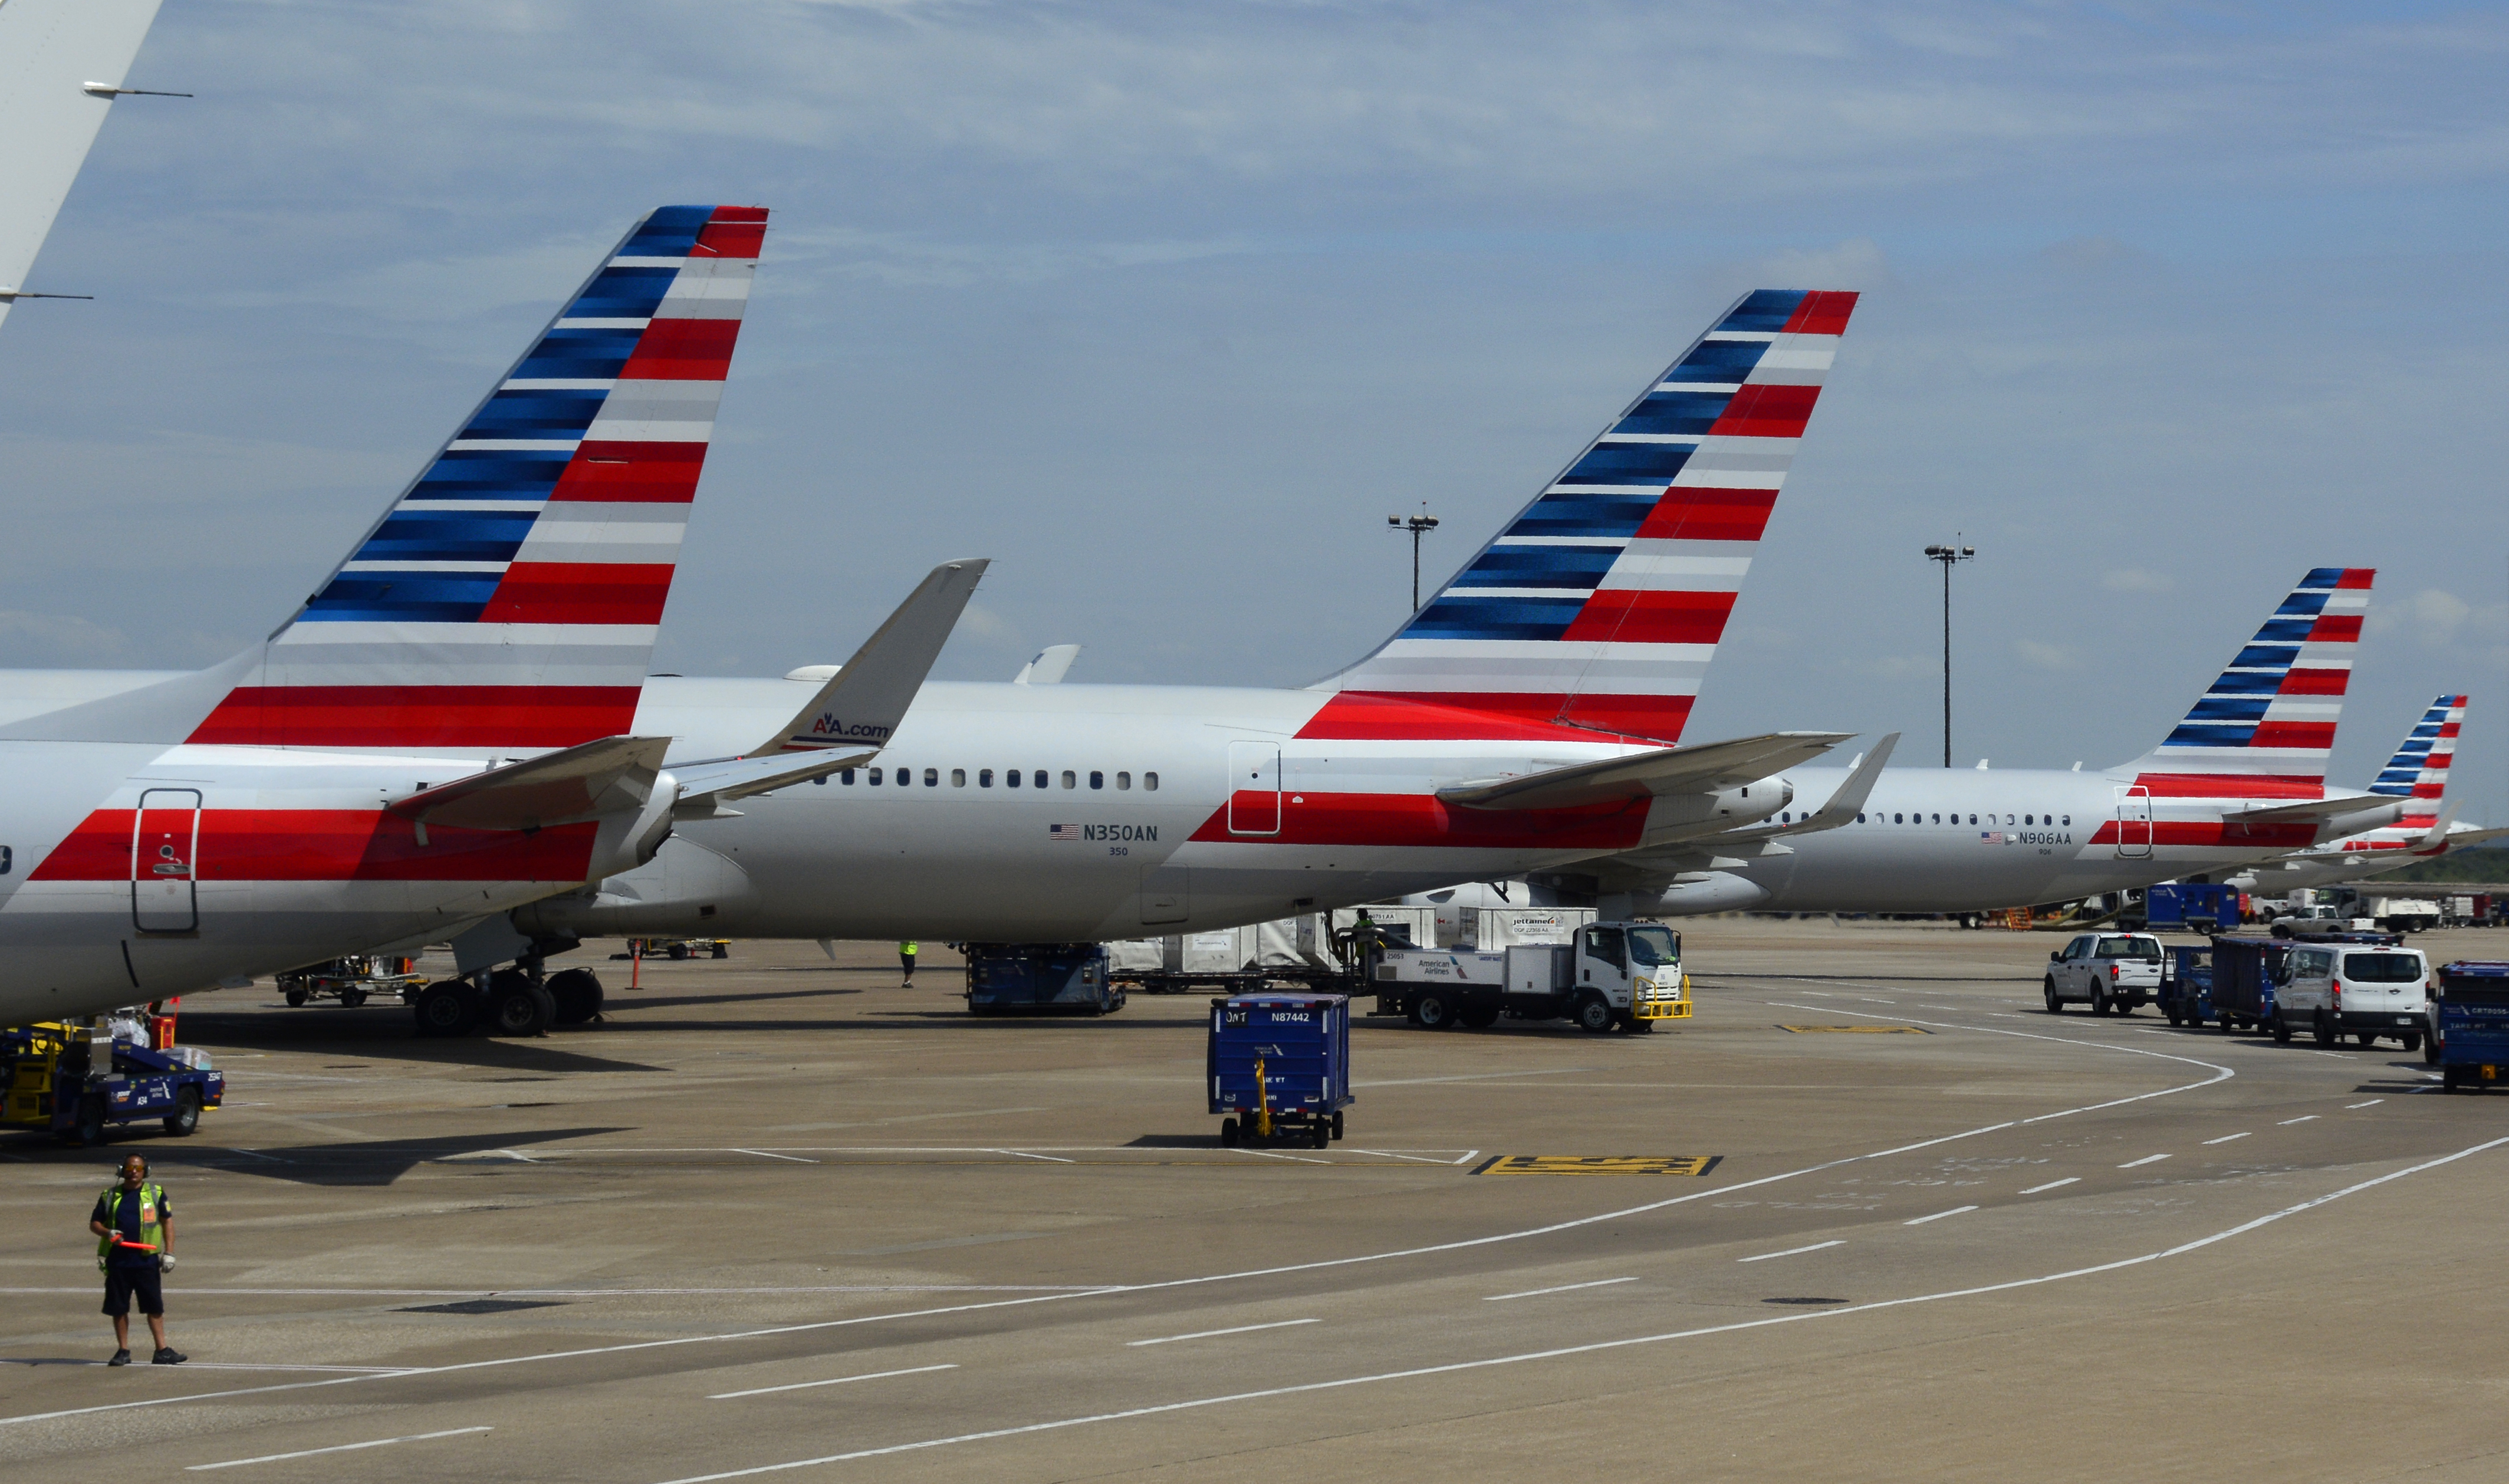 American Airlines passenger jets parked at gates at Dallas/Fort Worth International Airport in Texas.